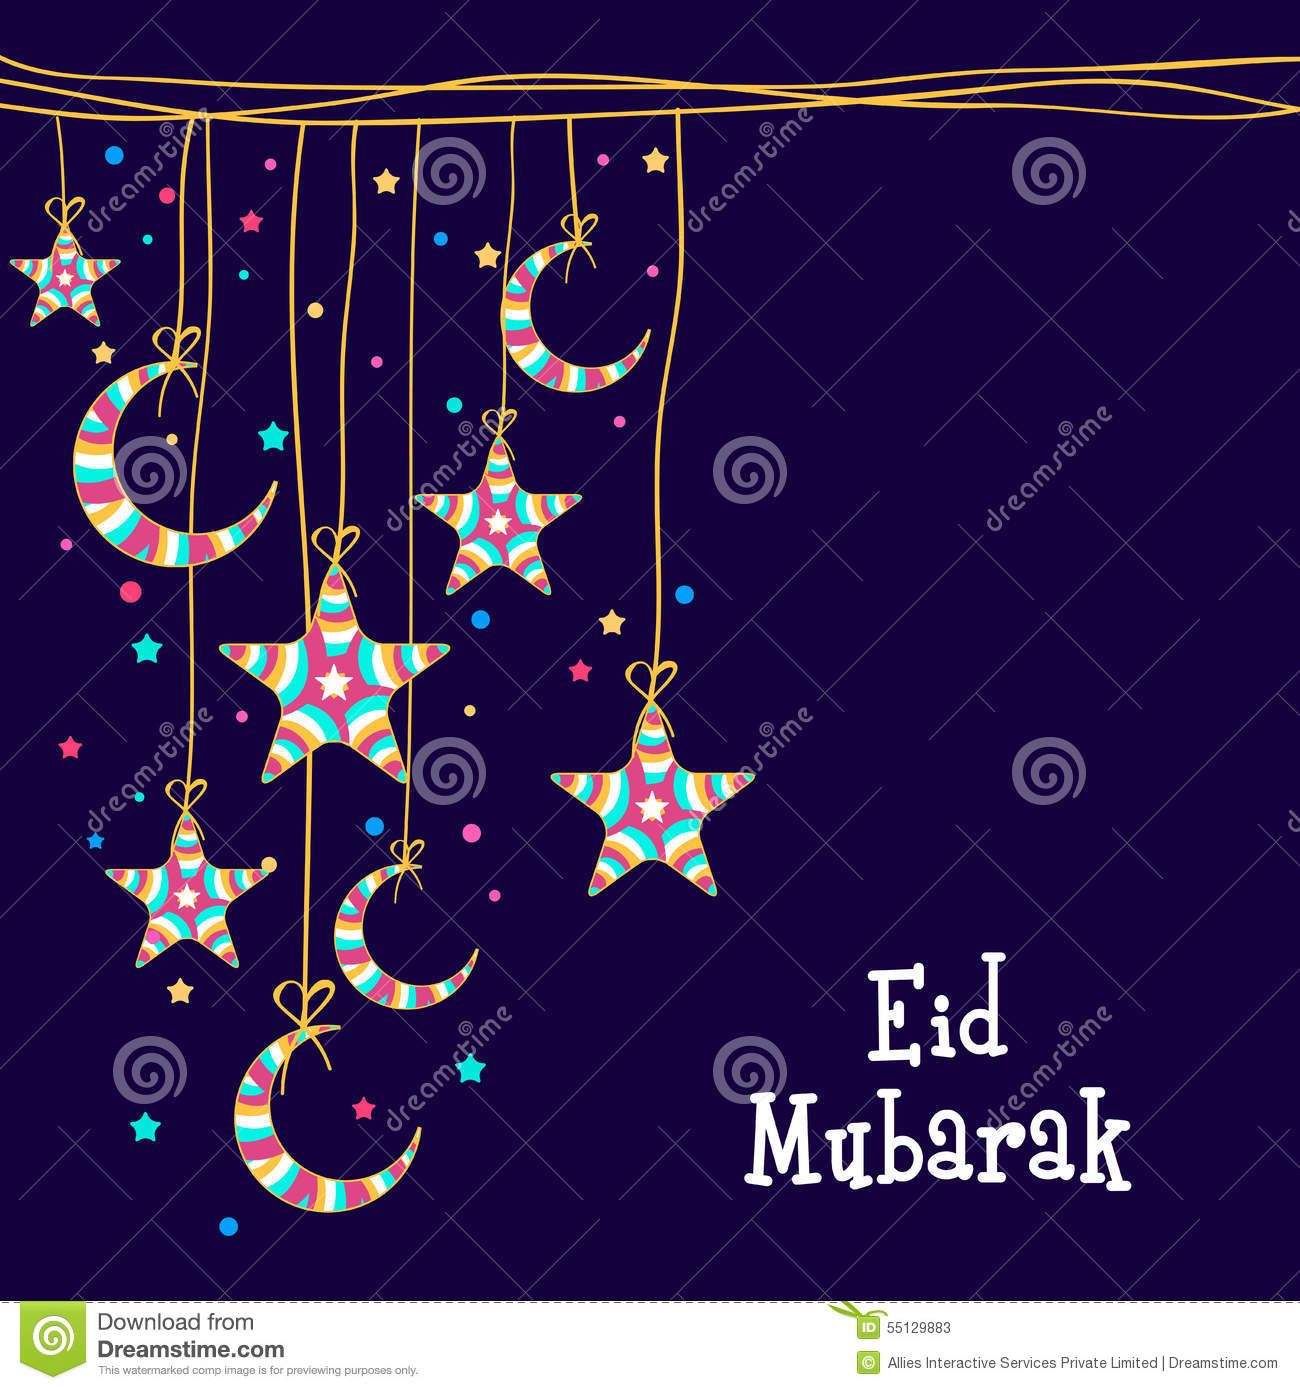 Greeting Card With Stars And Moon For Eid Mubarak